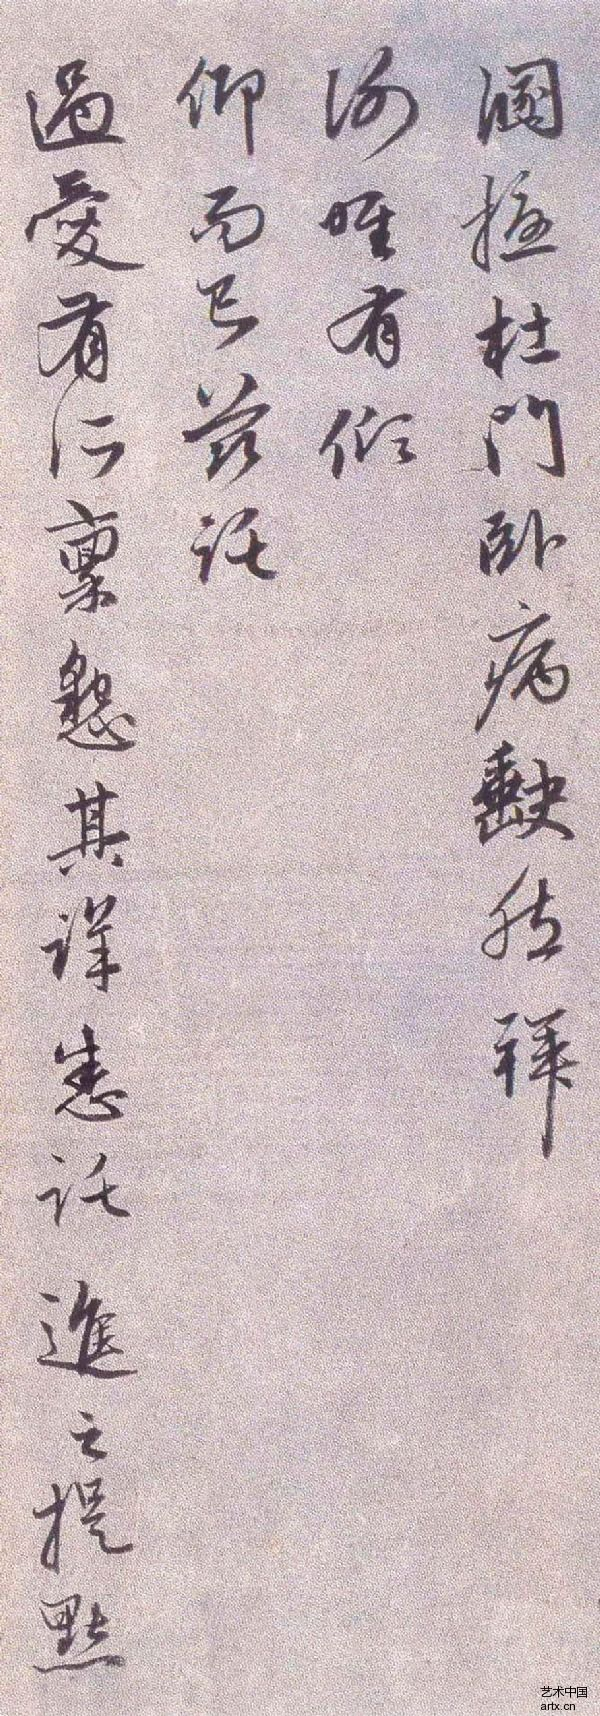 Best images about hanzi on pinterest heart sutra